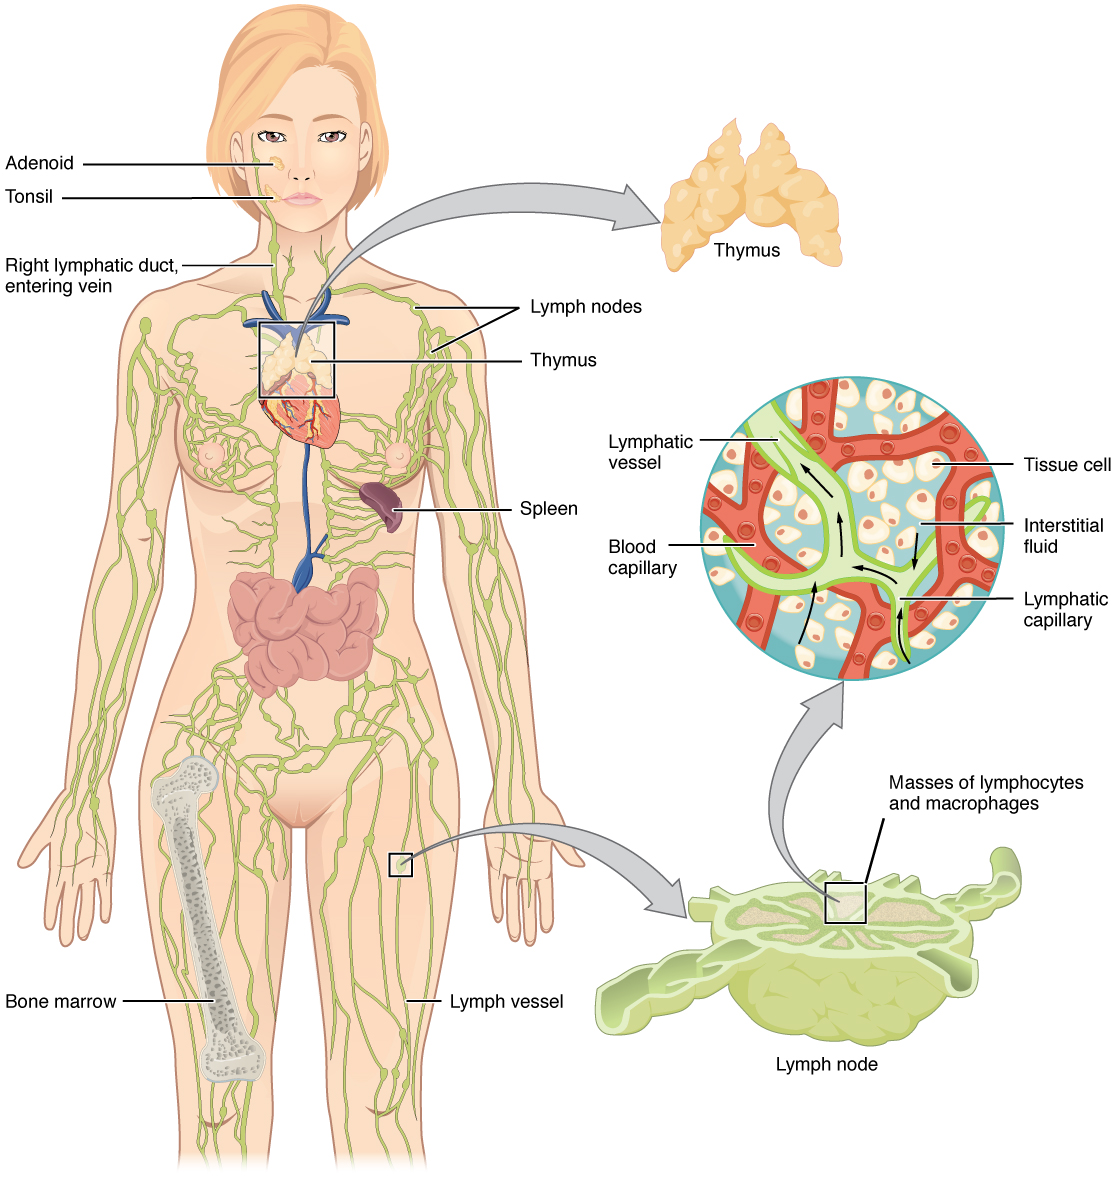 Anatomy of the lymphatic and immune systems anatomy and physiology lymphatic vessels in the arms and legs convey lymph to the larger lymphatic vessels in the torso ccuart Choice Image